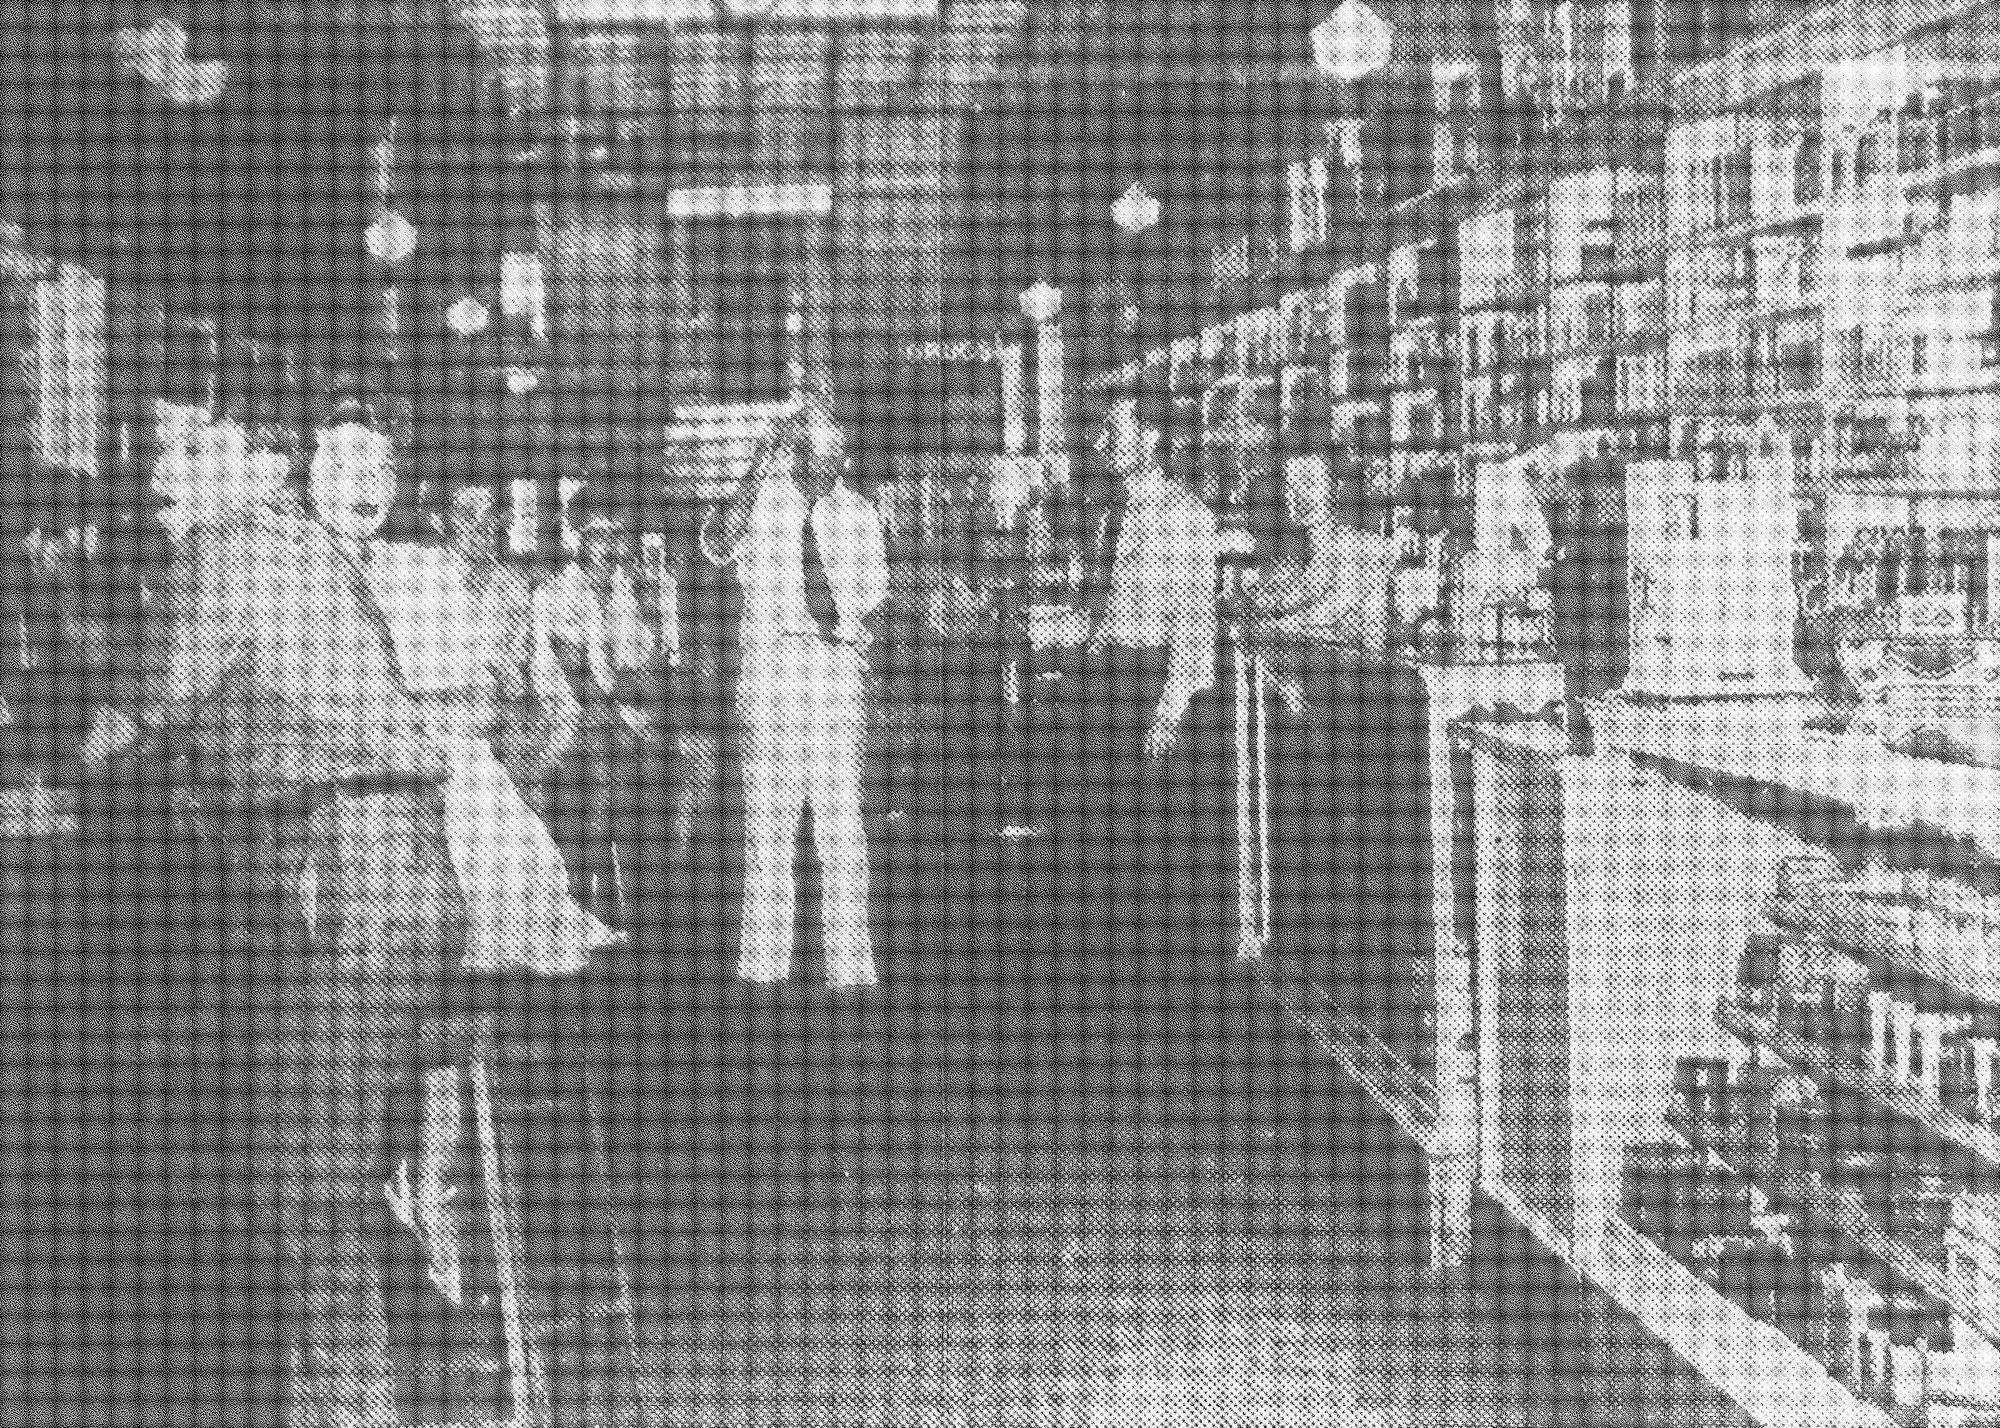 RIGHT: Patrons shop at Rowes Drug Store in June 1945.